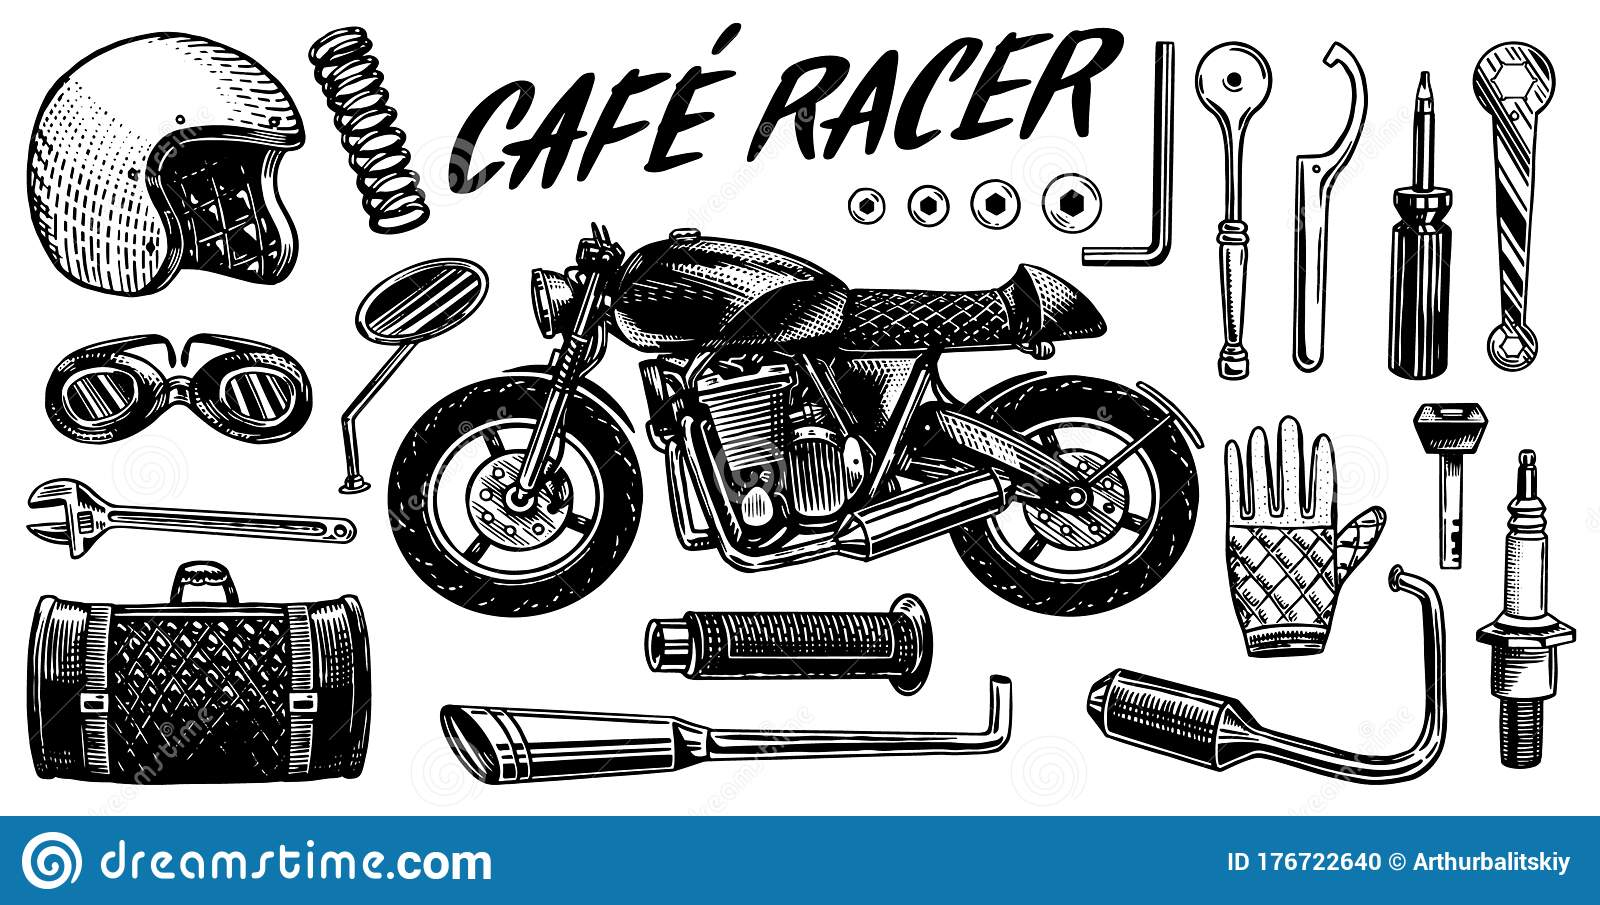 Motorcycle Repair Set Of Tools For The Cafe Racer Bike Gloves Helmet Instruments For Motor Bicycle Mending And Stock Vector Illustration Of Part Label 176722640